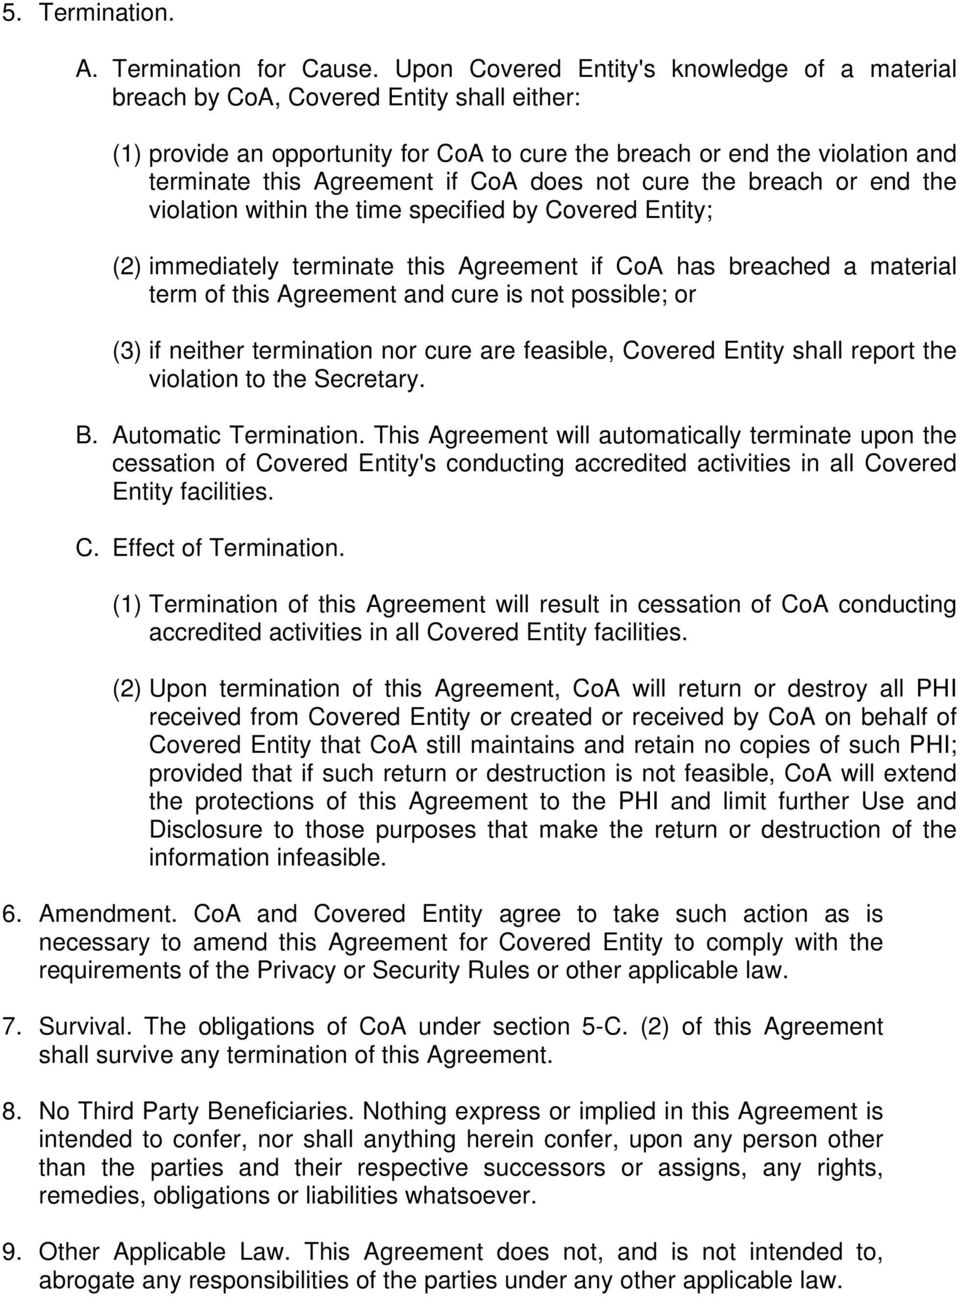 CoA does not cure the breach or end the violation within the time specified by Covered Entity; (2) immediately terminate this Agreement if CoA has breached a material term of this Agreement and cure